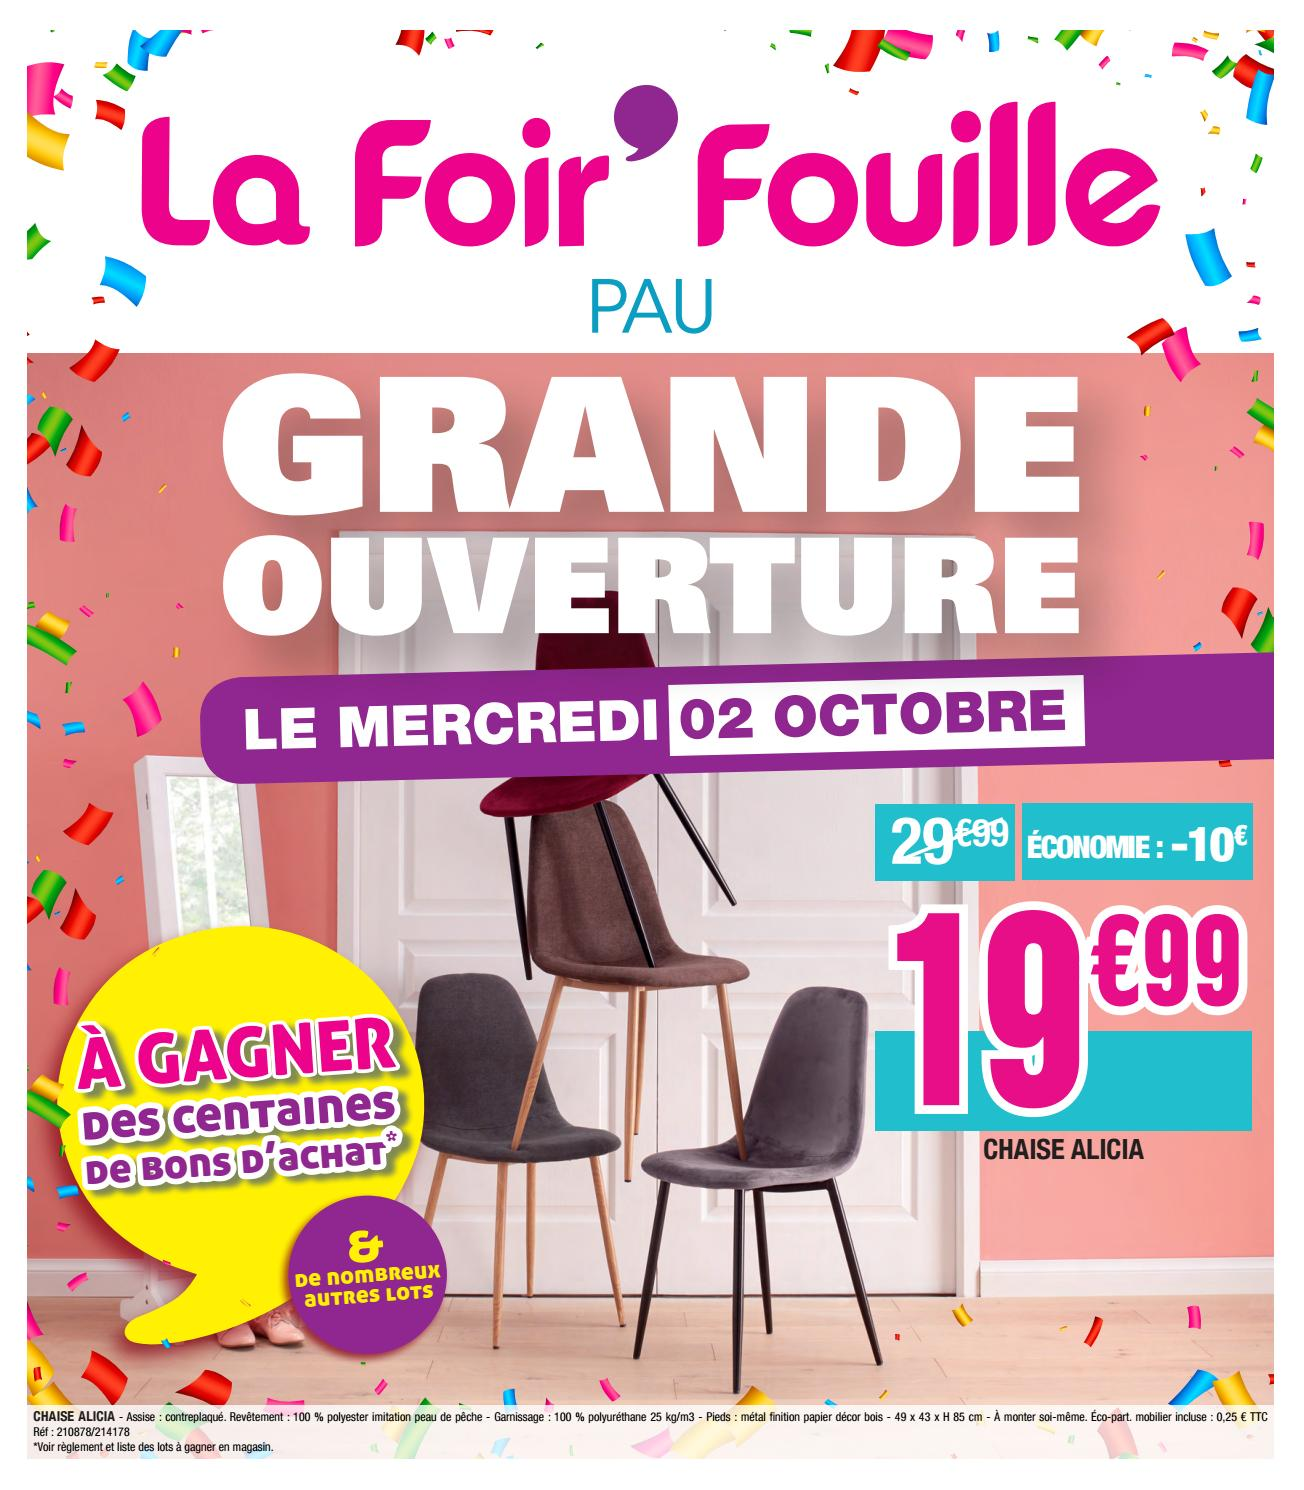 Foir'Fouille Catalogue Pau La issuu Ouverture by Yb7gyf6